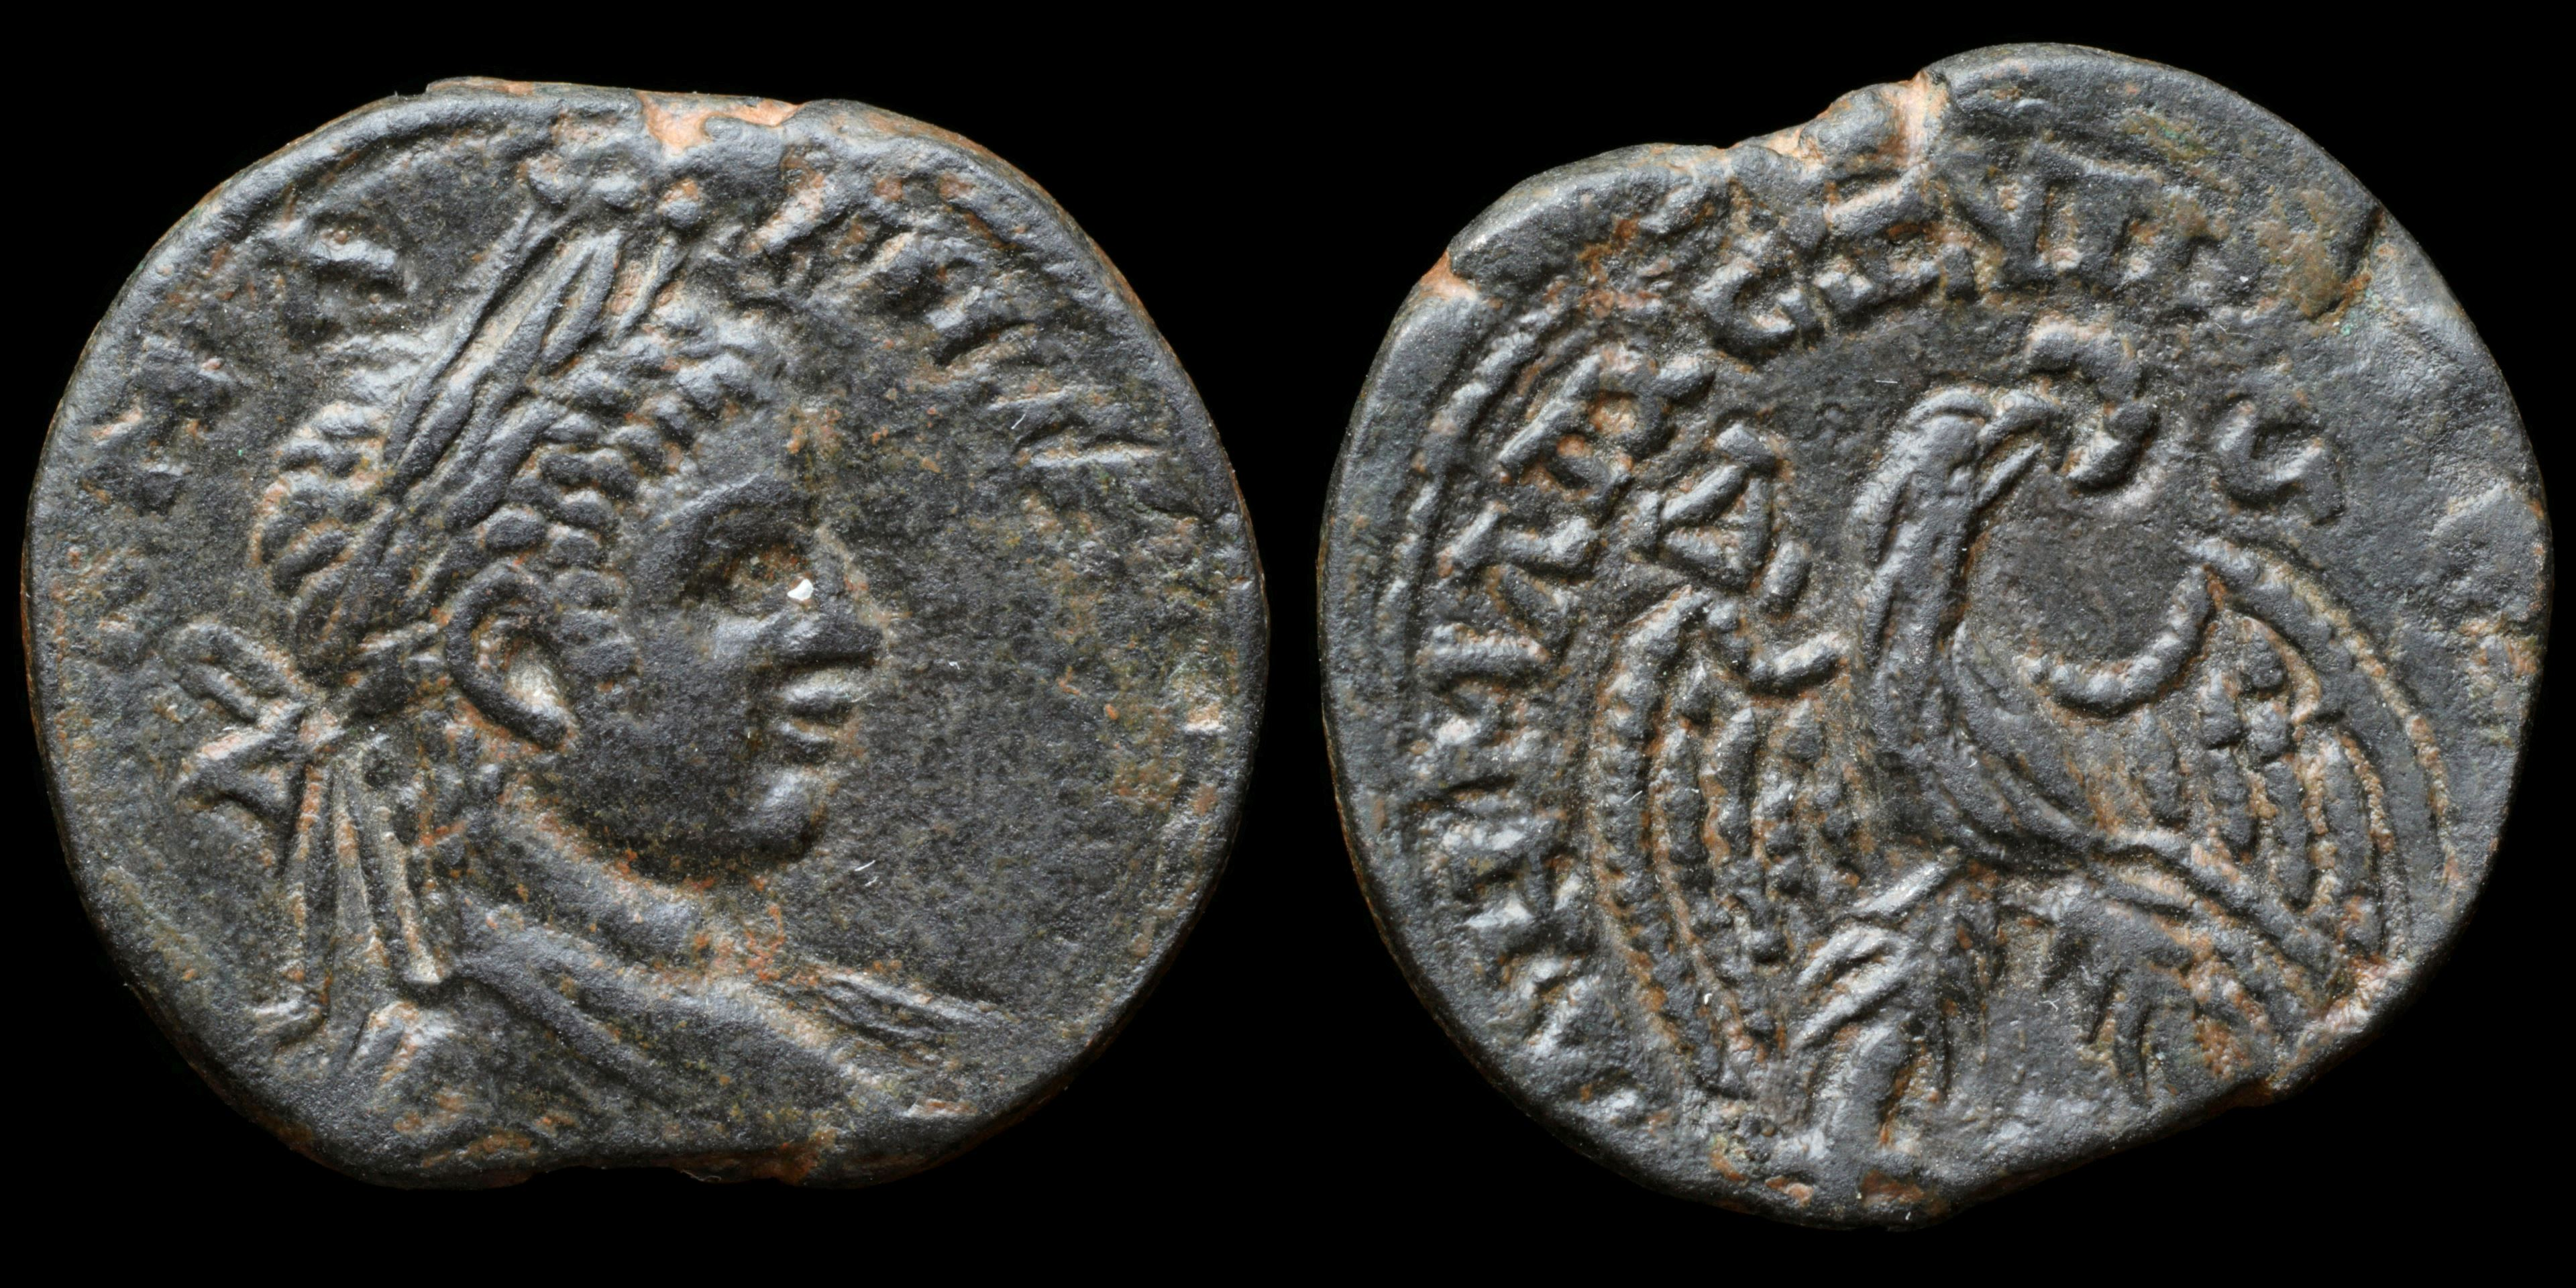 /Files/Images/Coinsite/CoinDB/1369_Elagabalus_tetradrachm.jpg